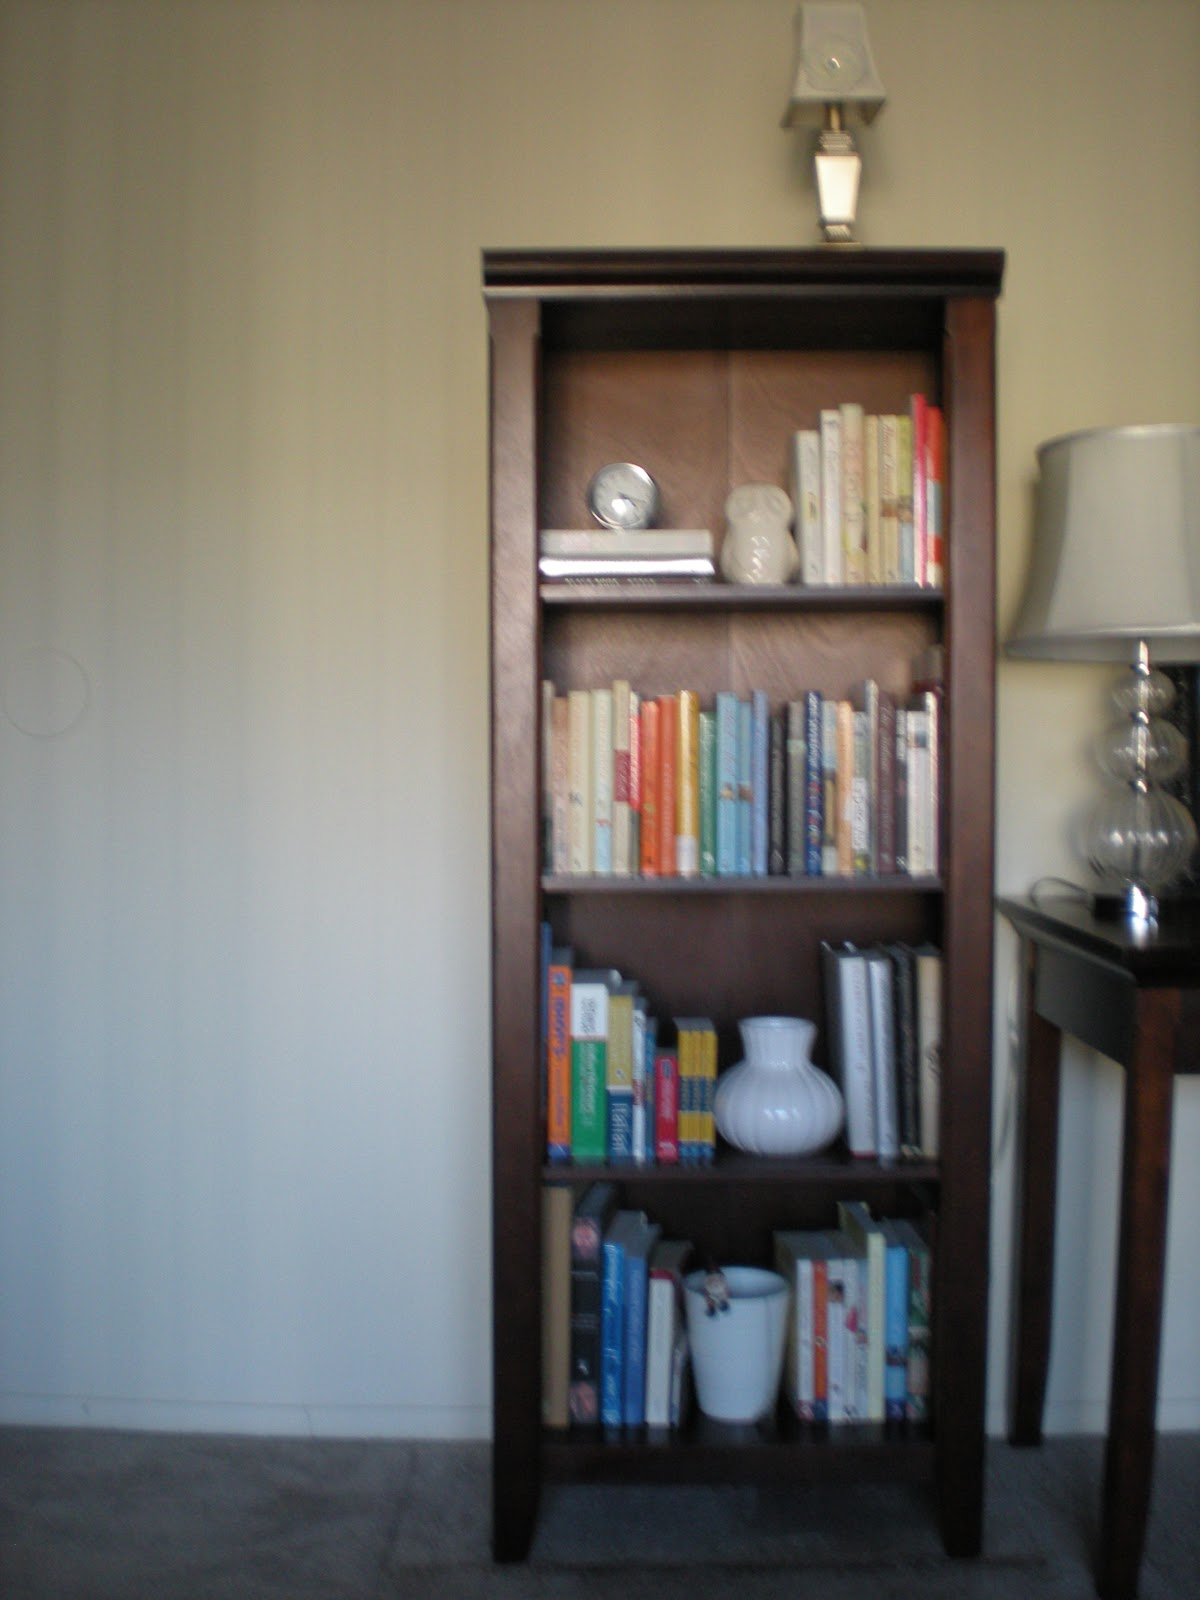 Its The Avington Bookshelf In Dark Tobacco Ive Wanted From Target For Years Now A More Sophisticated Option Than Collegiate IKEA Expedit Unit To